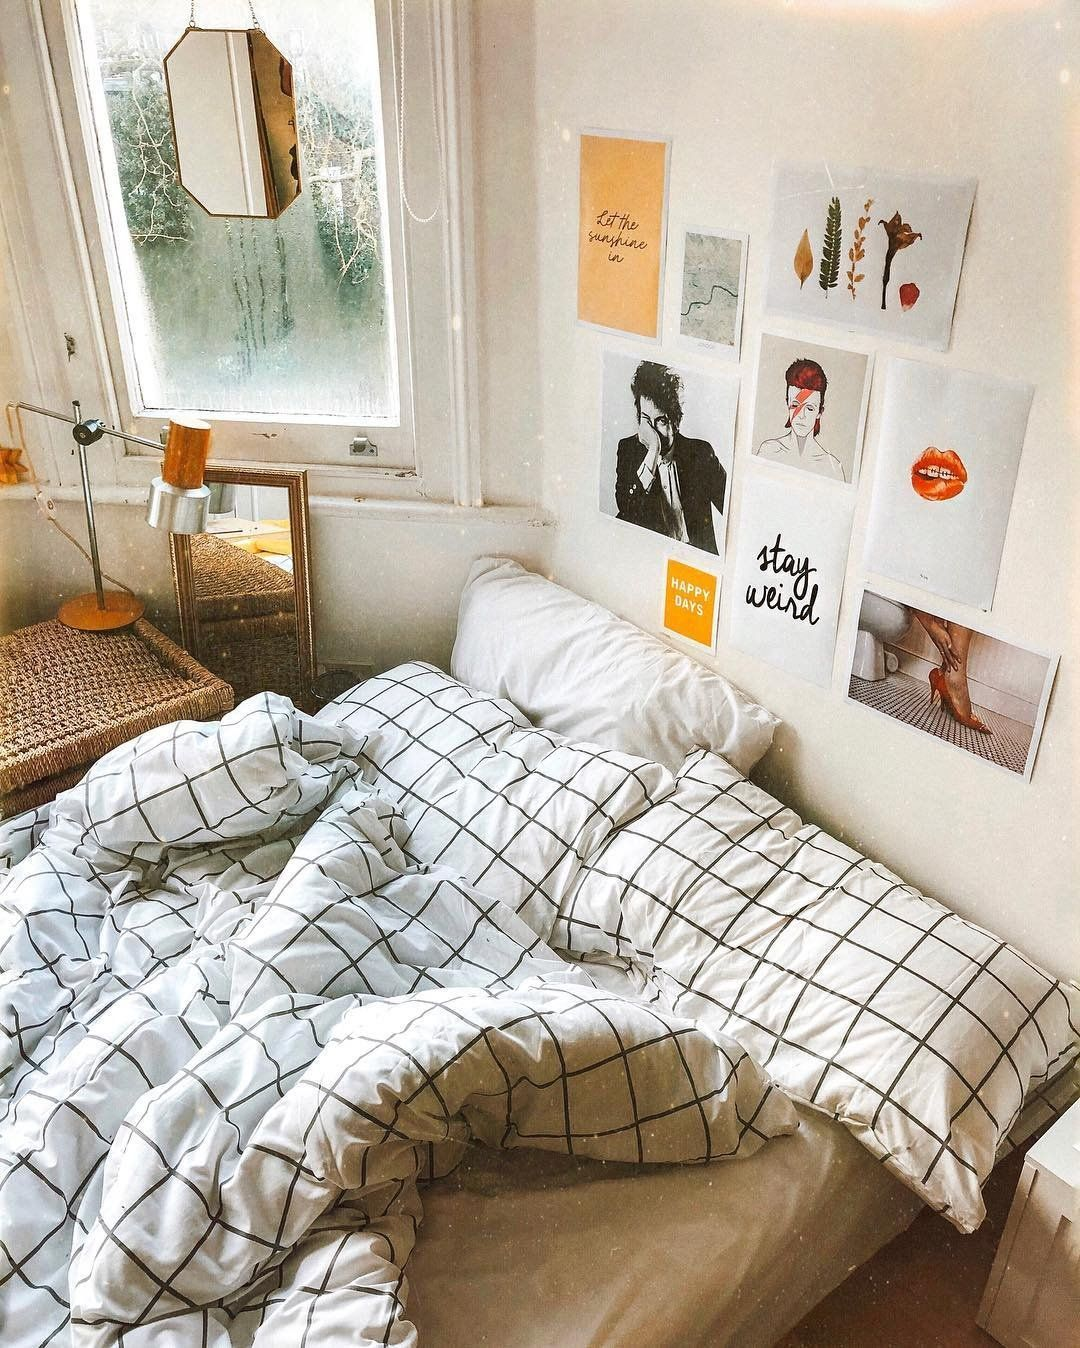 Urbanoutfitters Inspiration Outfitters Uoeurope Bedding Uohome Urban Home Homehome Inspiration Urban Ou Aesthetic Bedroom Room Inspo Dorm Room Decor